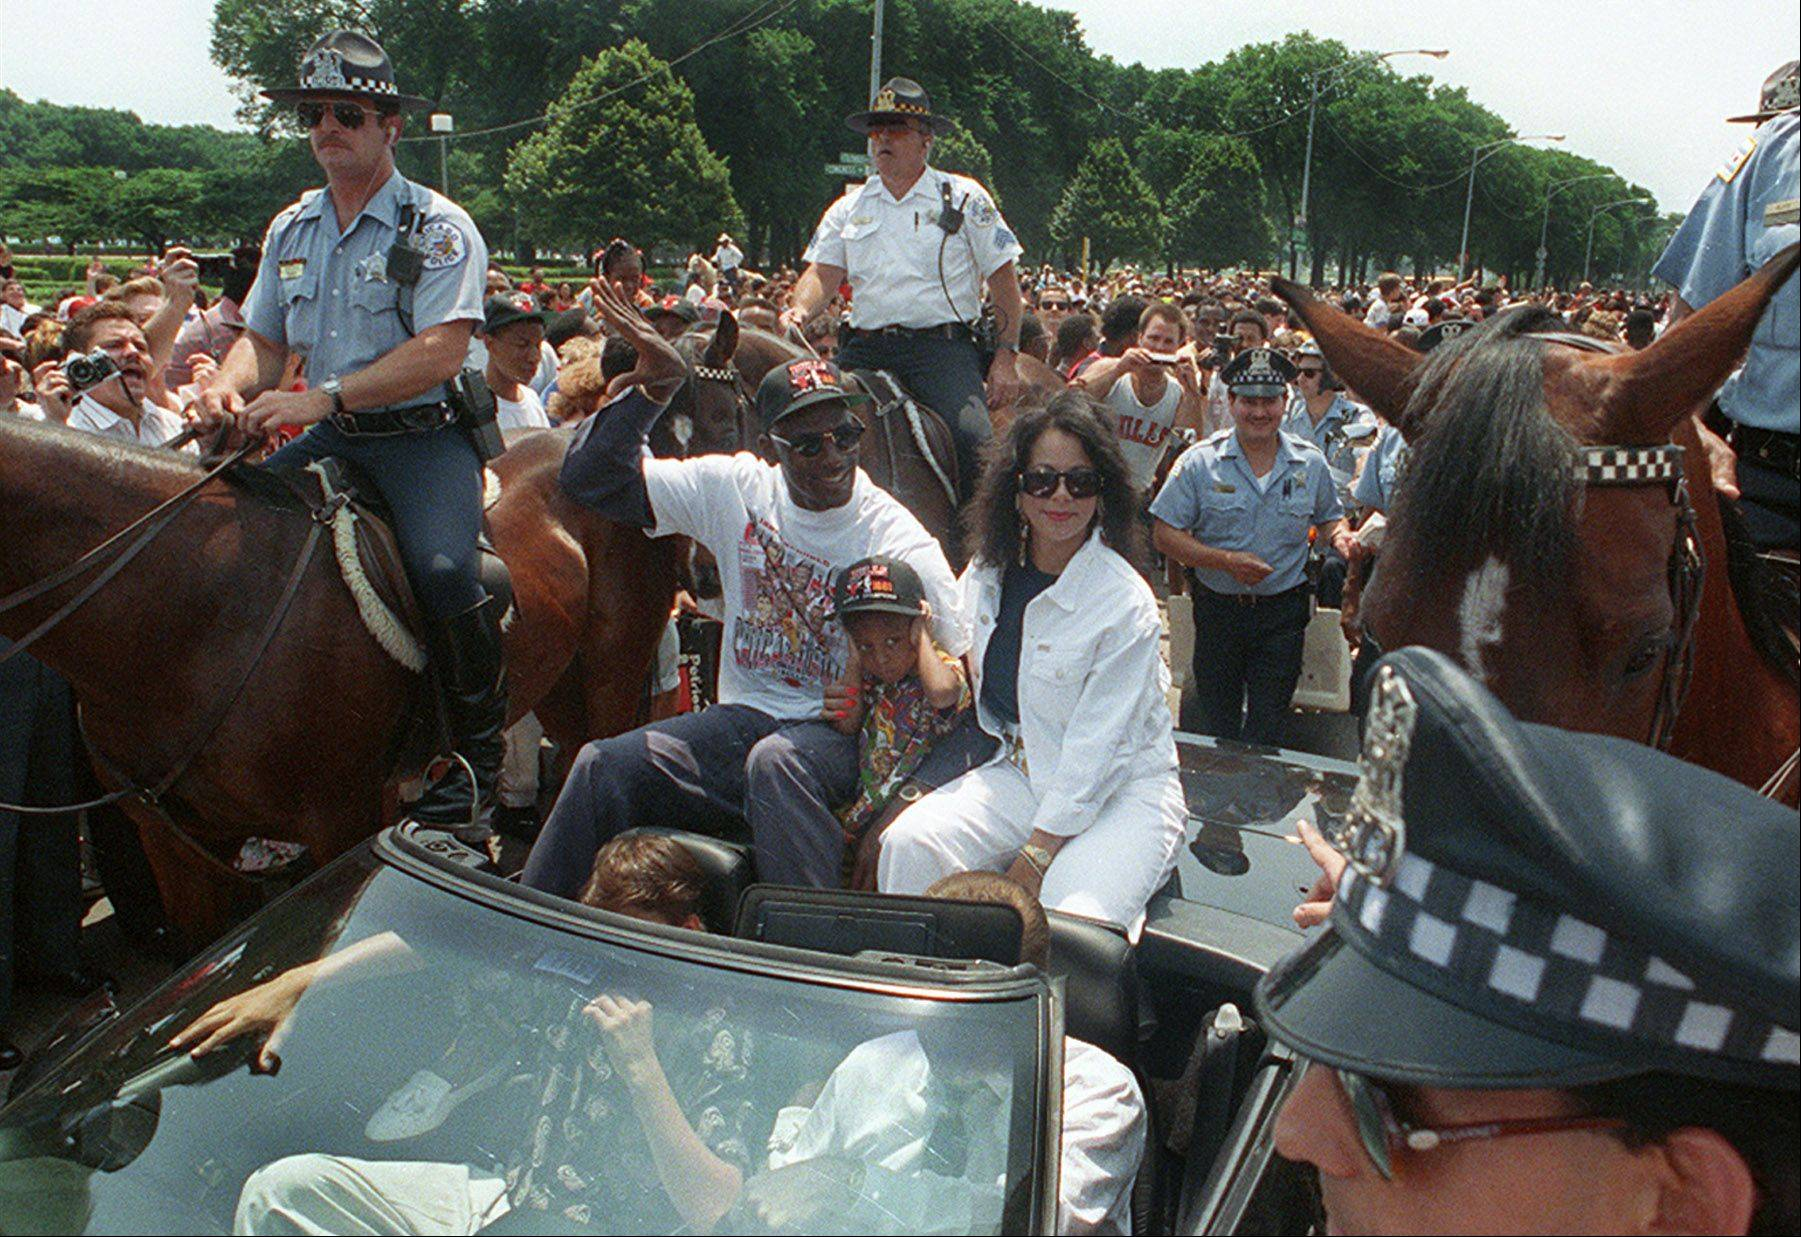 Michael Jordan rides in their first victory parade to Grant Park with his son and wife Juanita in the Chicago.